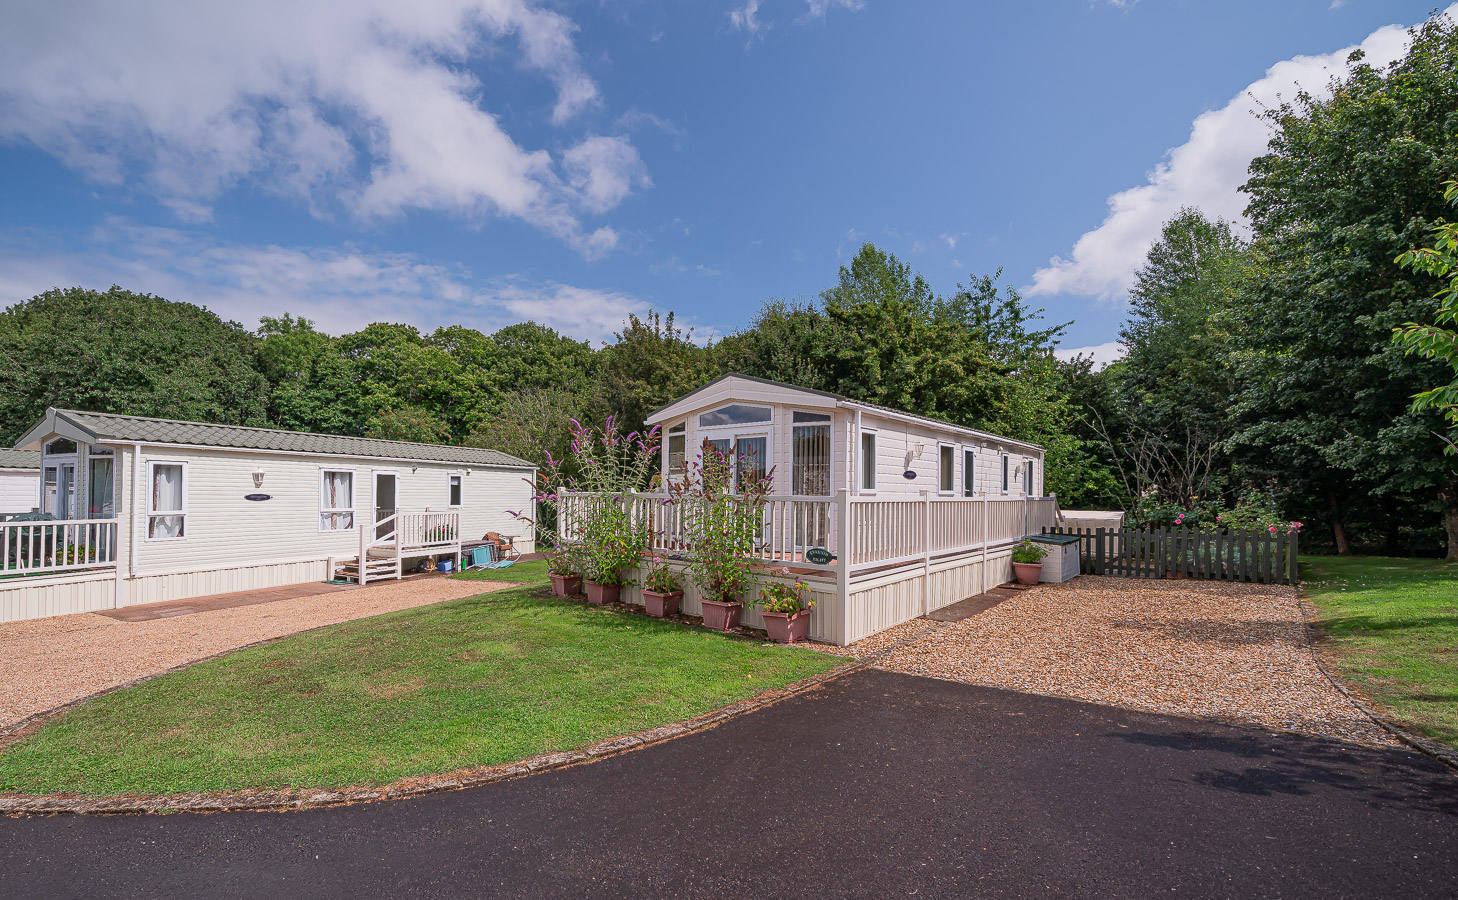 Monkton-Wyld-Static-Mobile-Holiday-Home-Sale-Plot-8-Charmouth-Lyme-Regis-West-Dorset-12